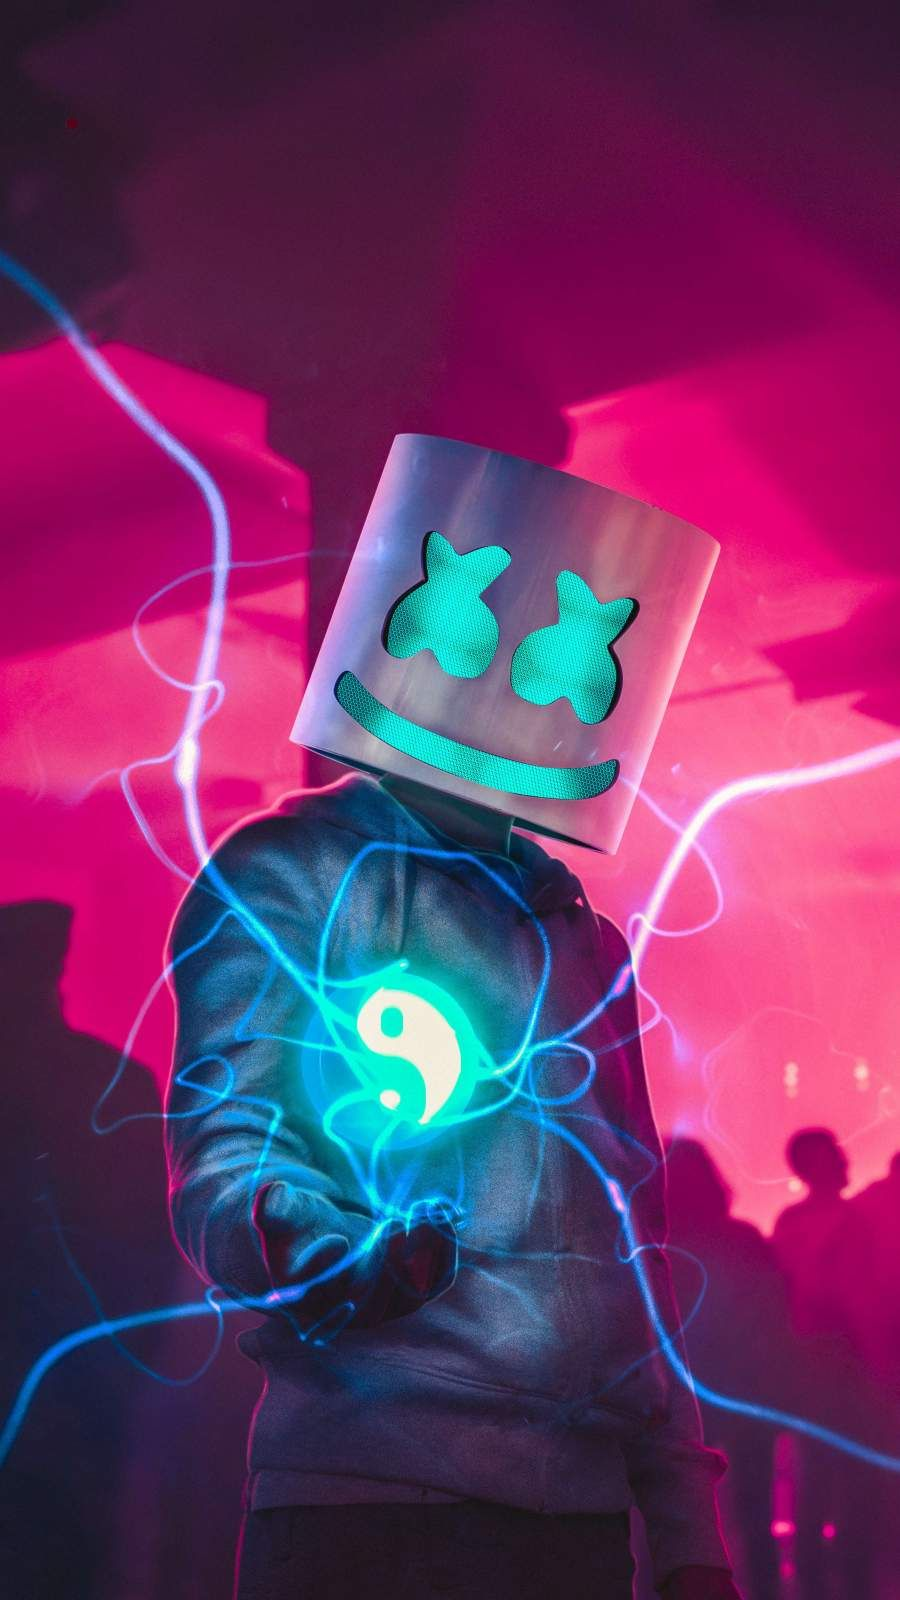 Marshmello Face iPhone Wallpaper (With images) Apple